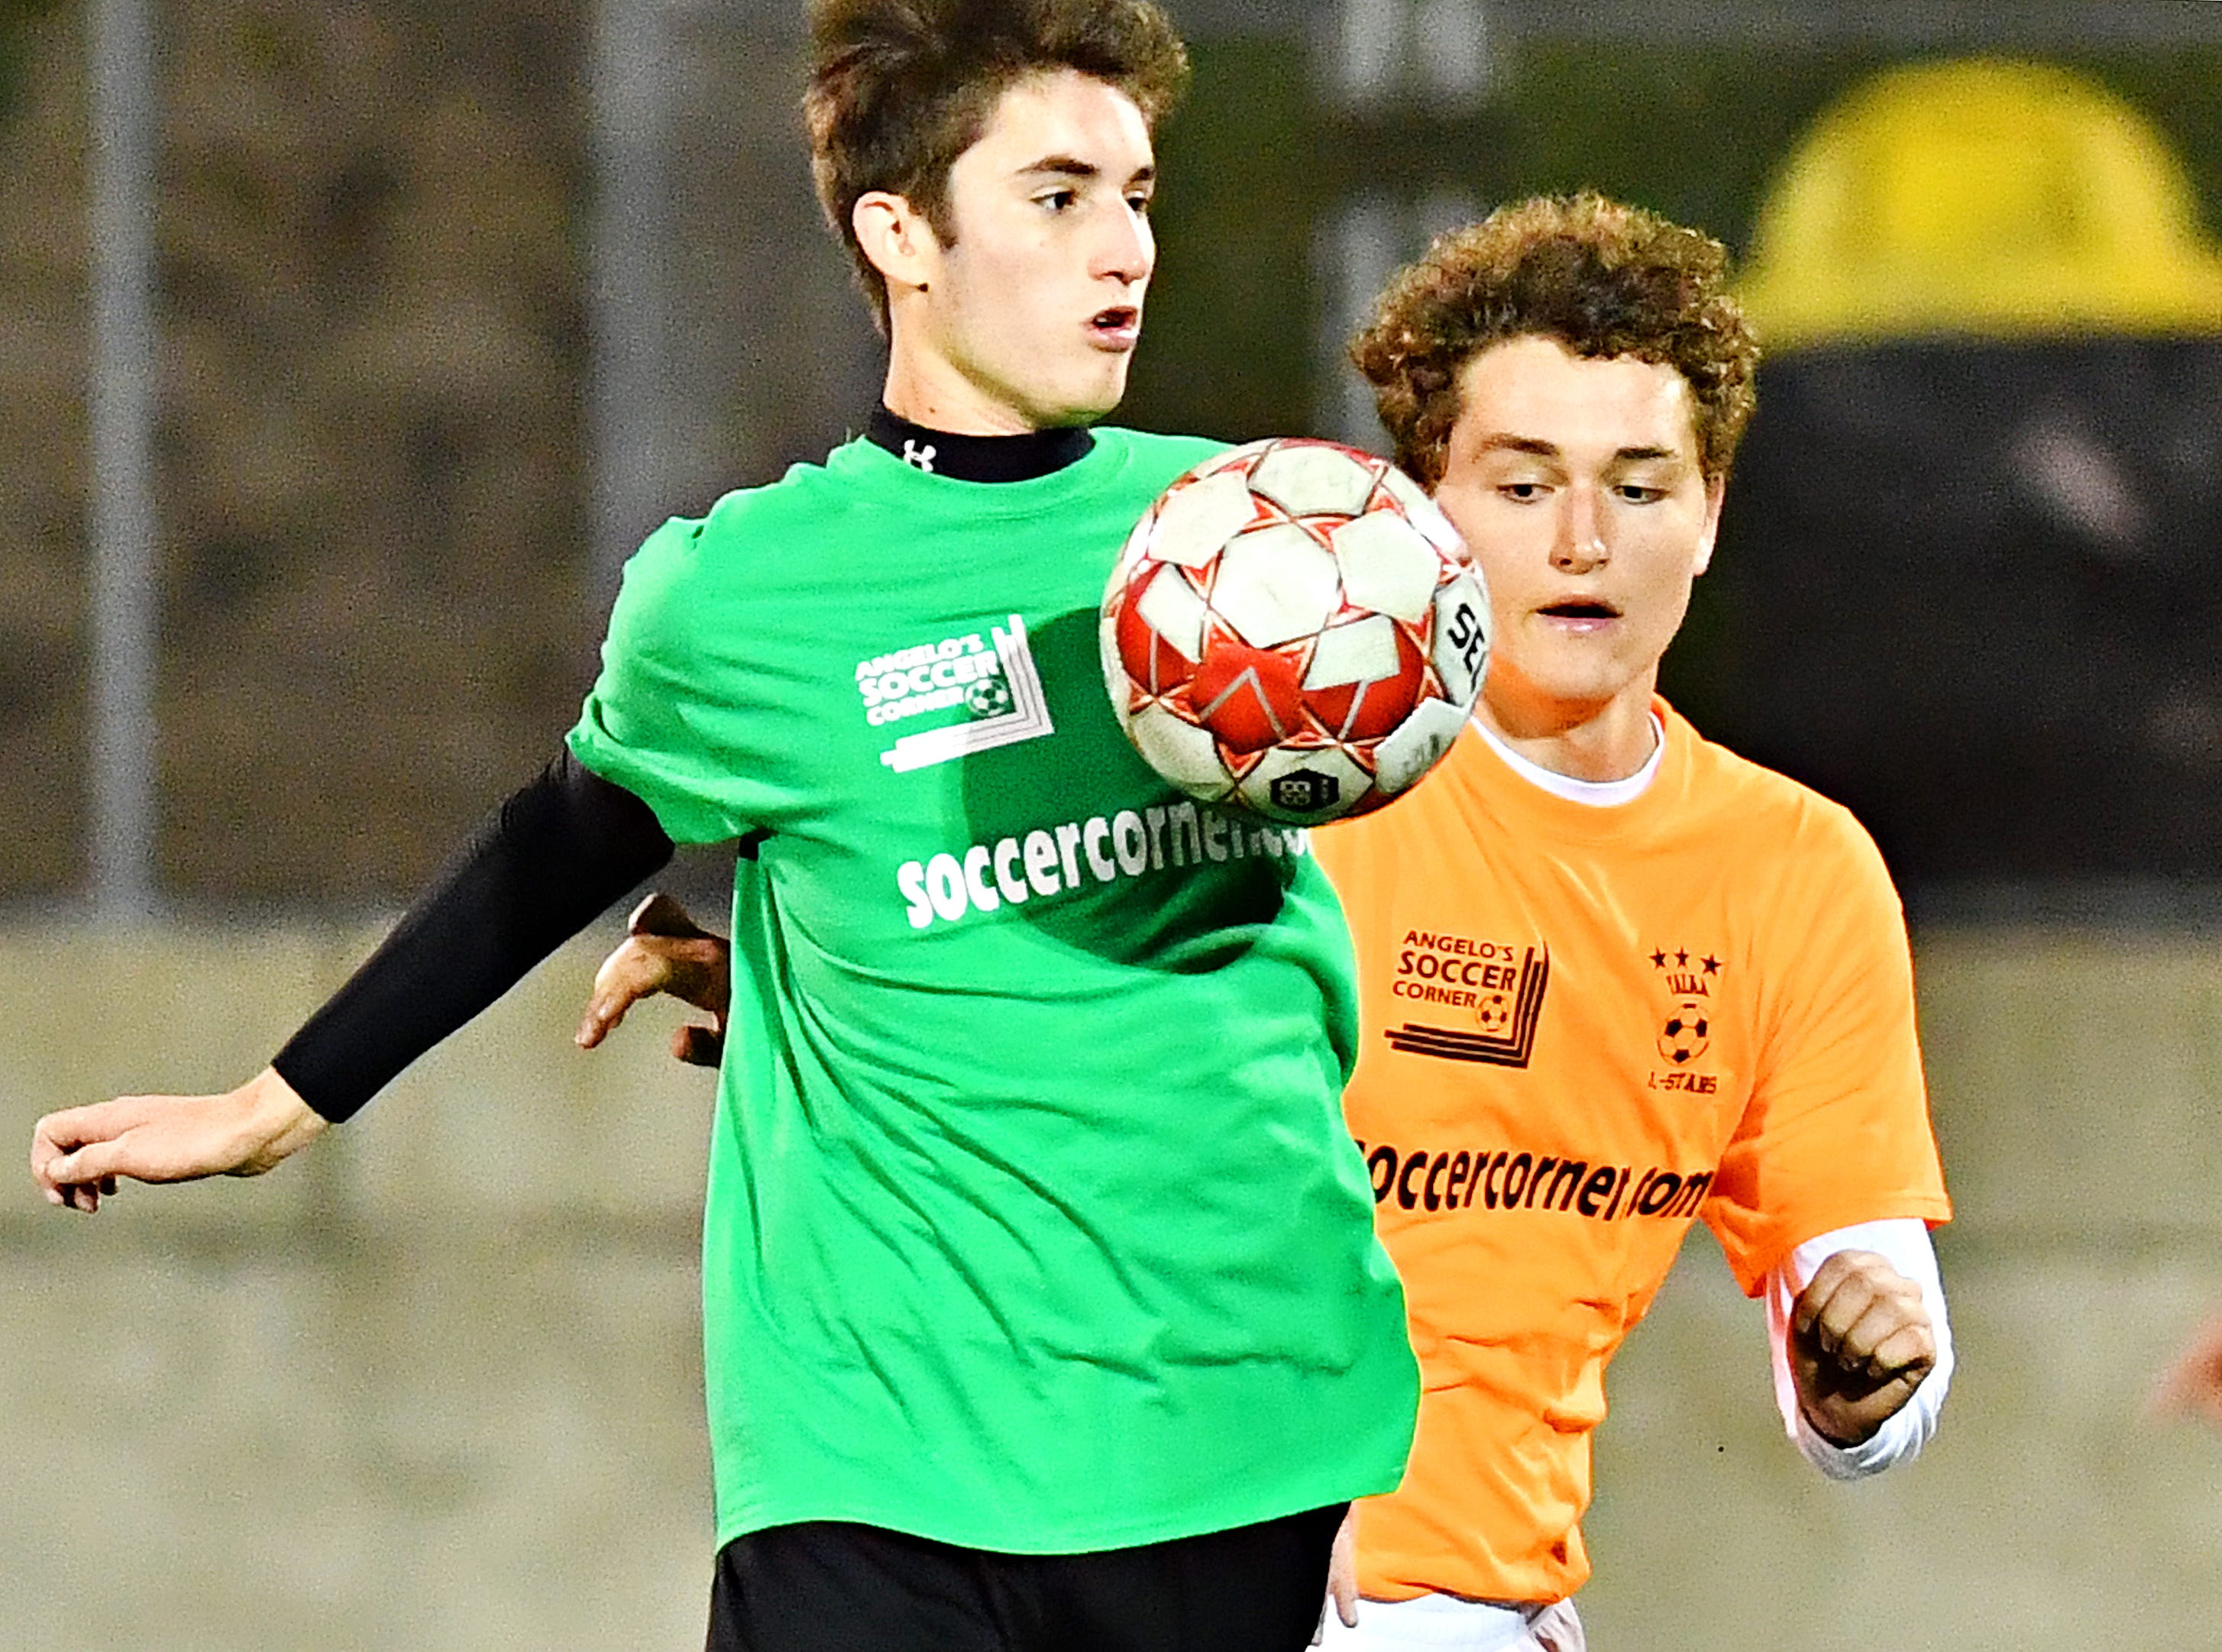 Central York's Michael Nelson, left, and West York's Aiden Clark compete for control of the ball during the YAIAA Boys' Soccer Senior All Star Game action at Horn Field in Red Lion, Wednesday, Nov. 7, 2018. Dawn J. Sagert photo